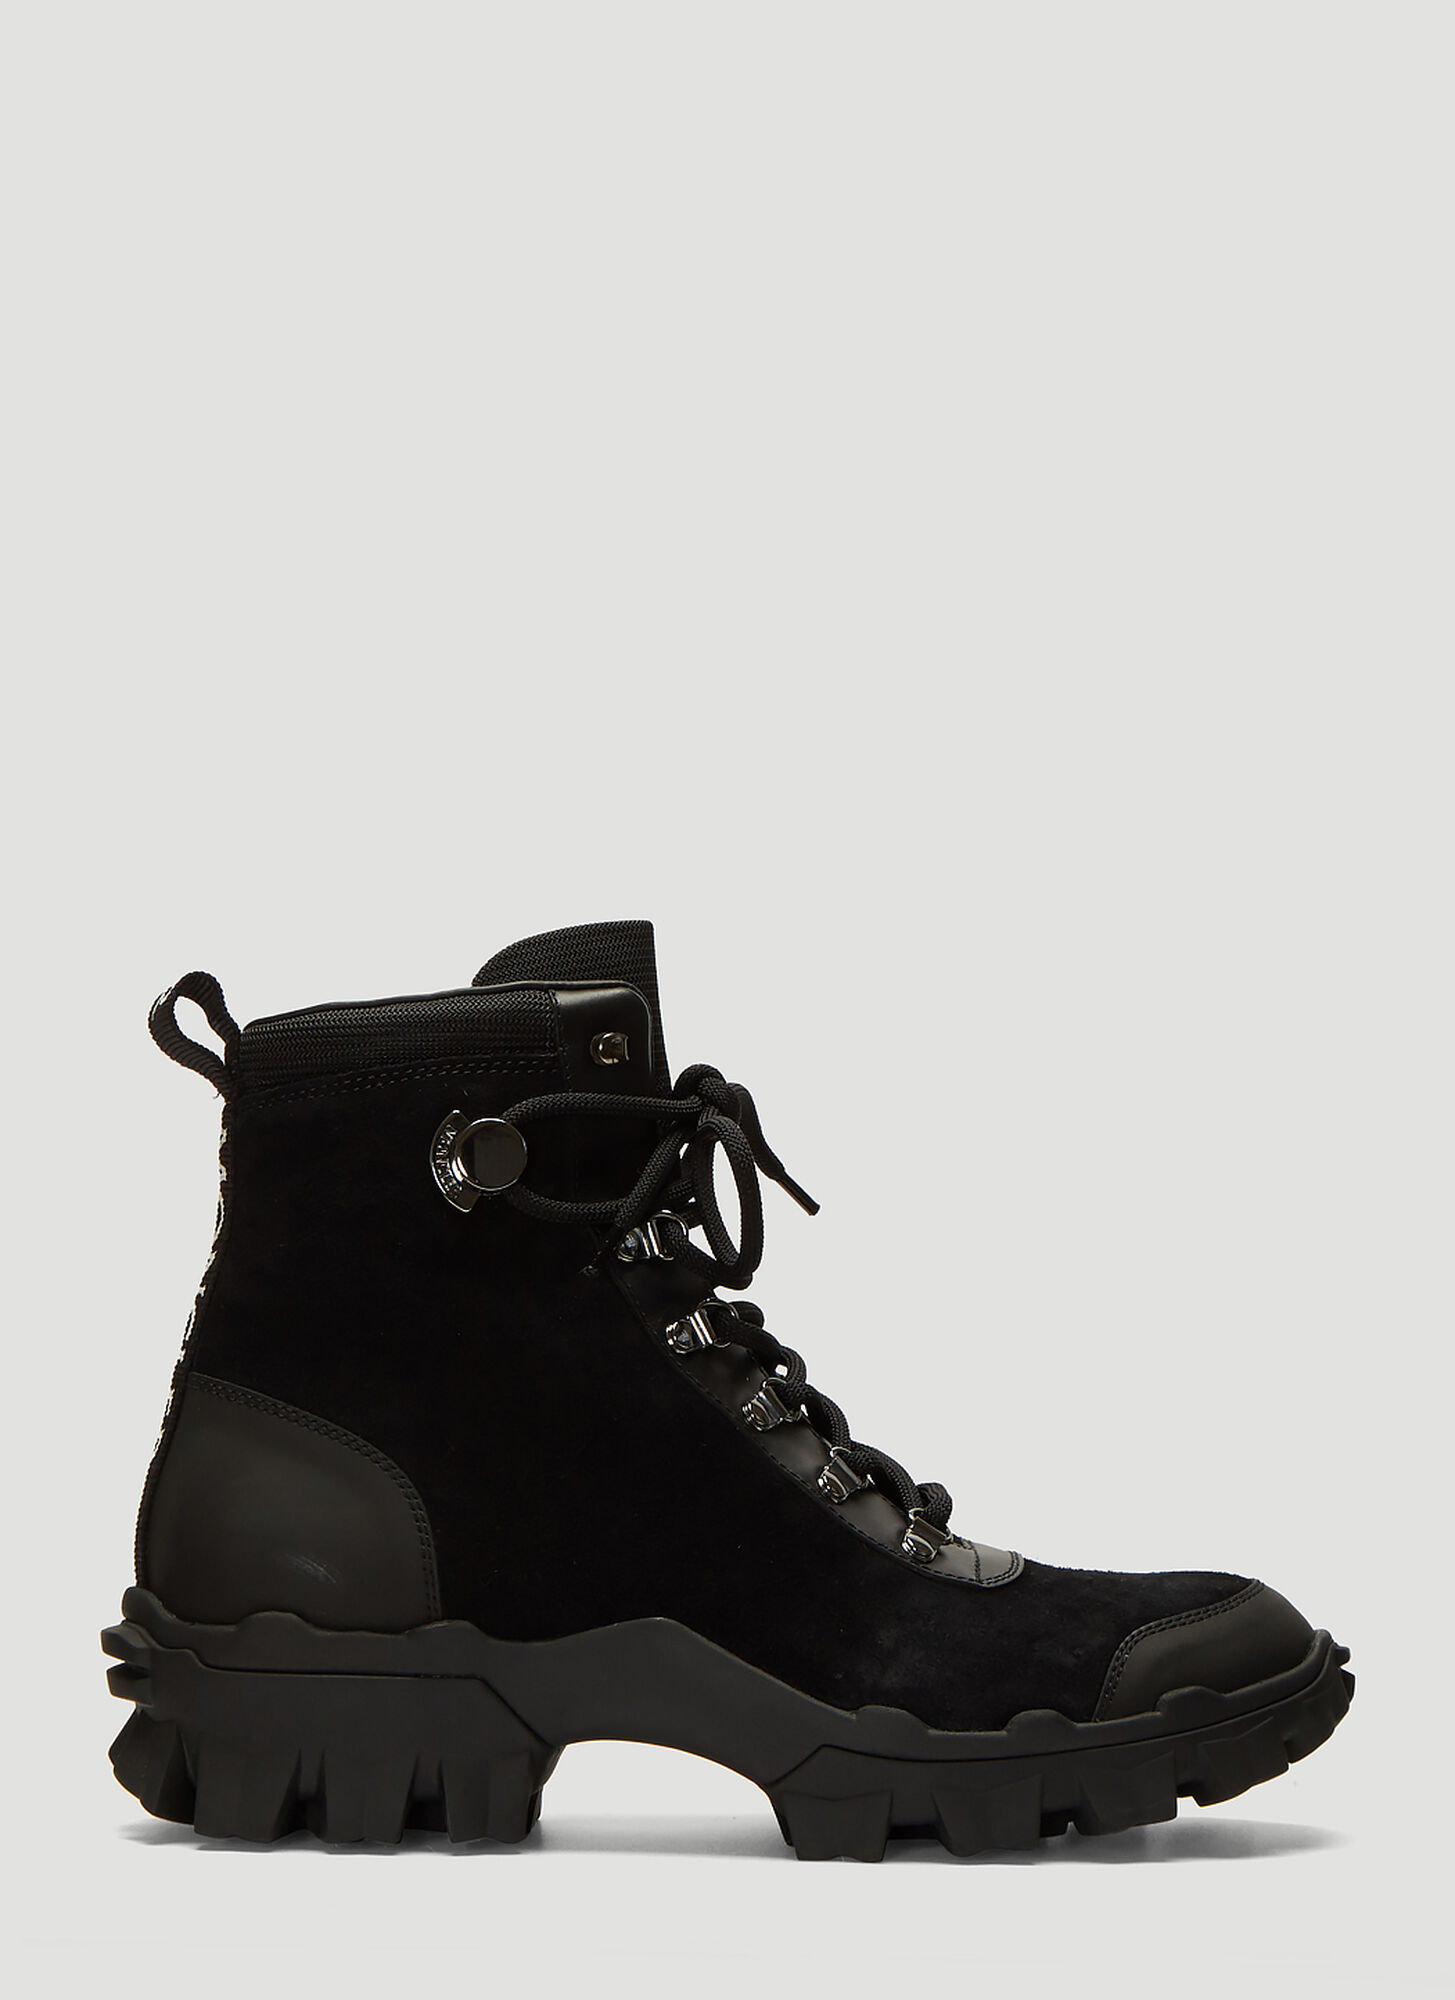 Moncler Helis Suede Boots in Black